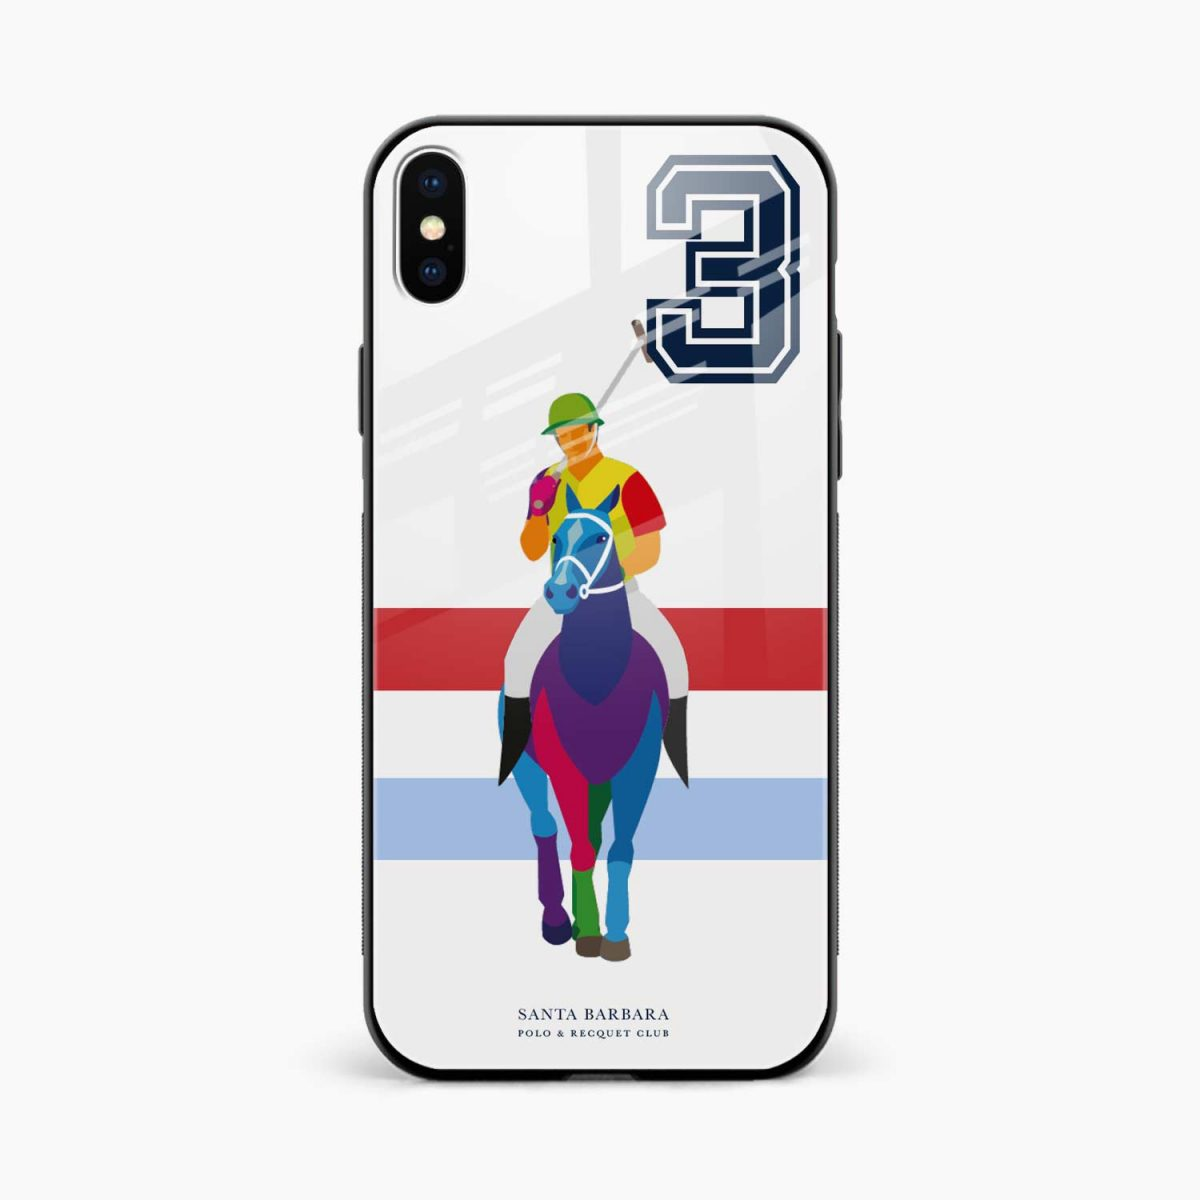 multicolor sant barbara polo front view apple iphone x xs max back cover